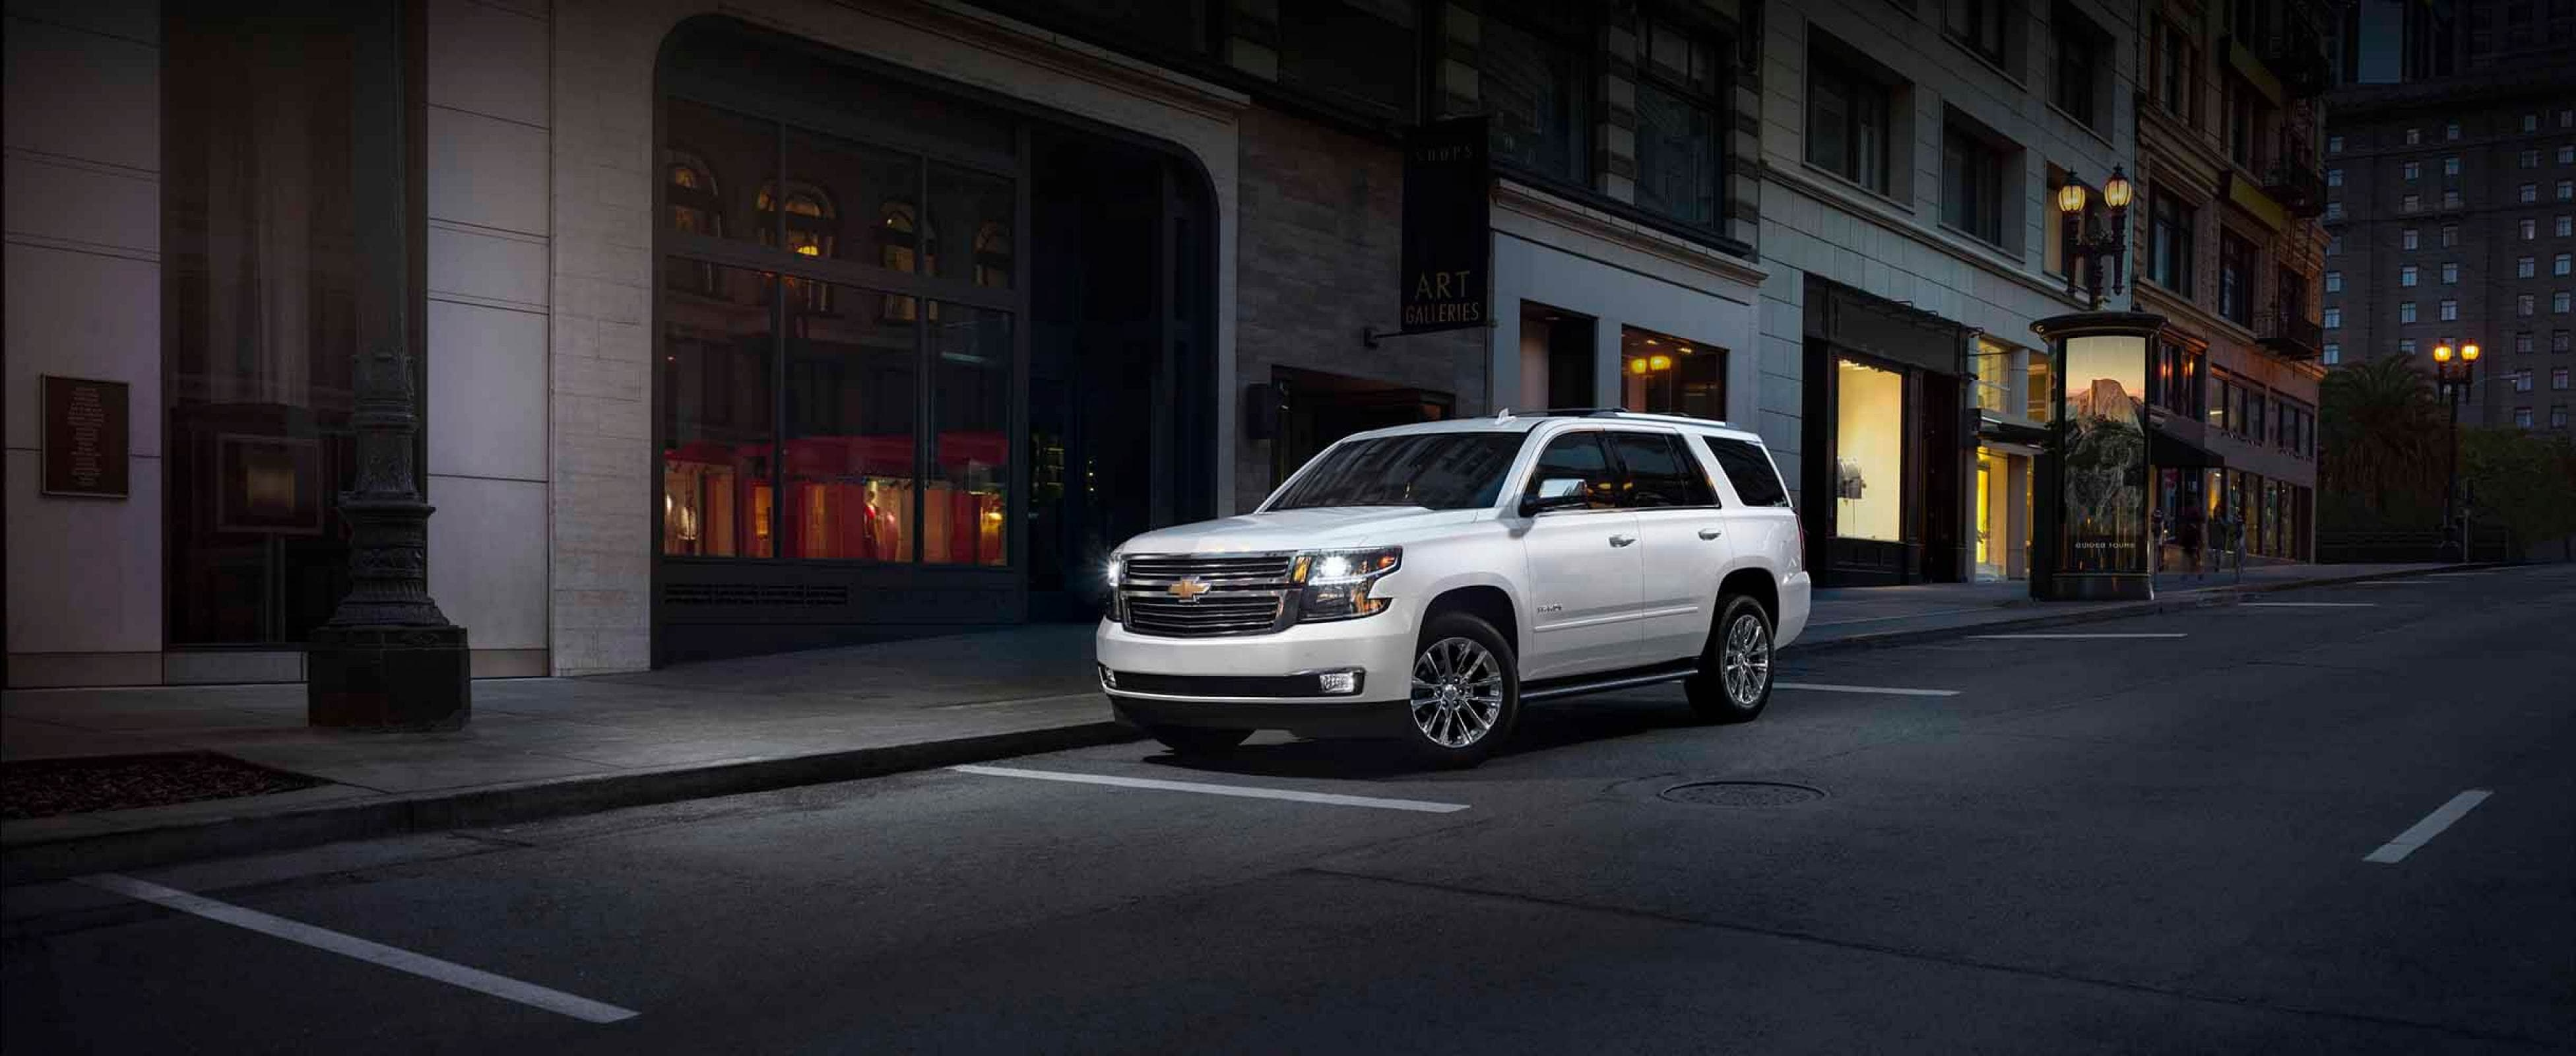 Full Size Suv Rental Chevy Tahoe Similar Budget Rent A Car